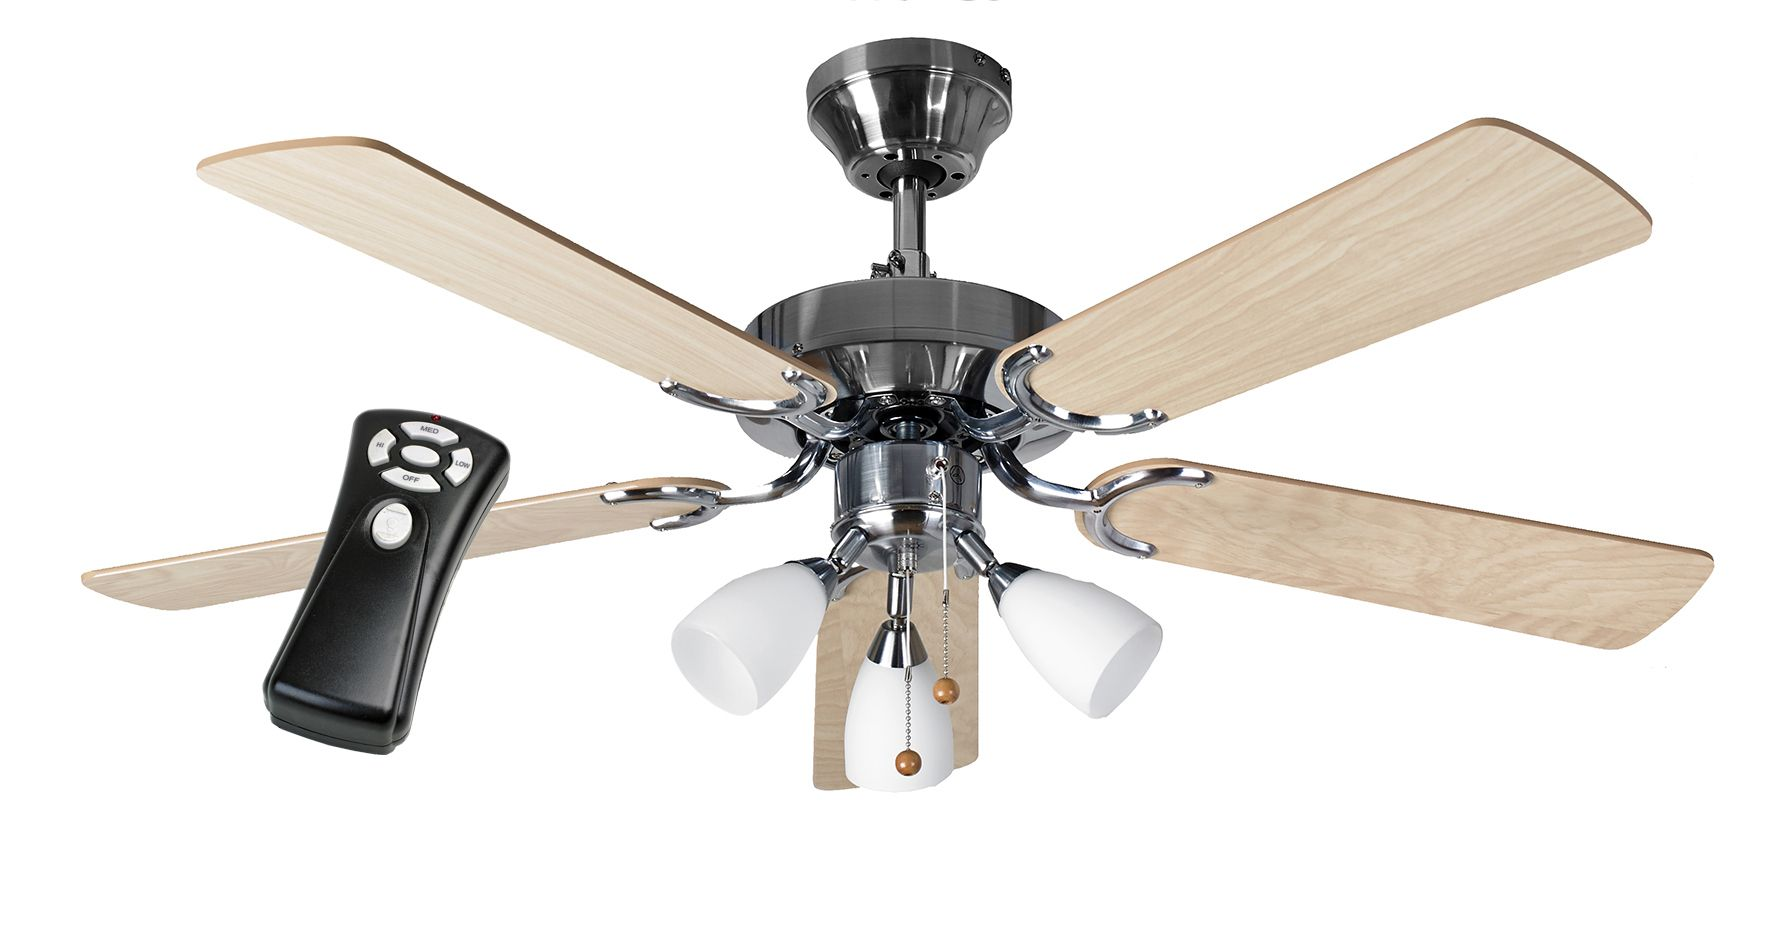 Eurofans New Jersey 42 Stainless Steel Ceiling Fan Light